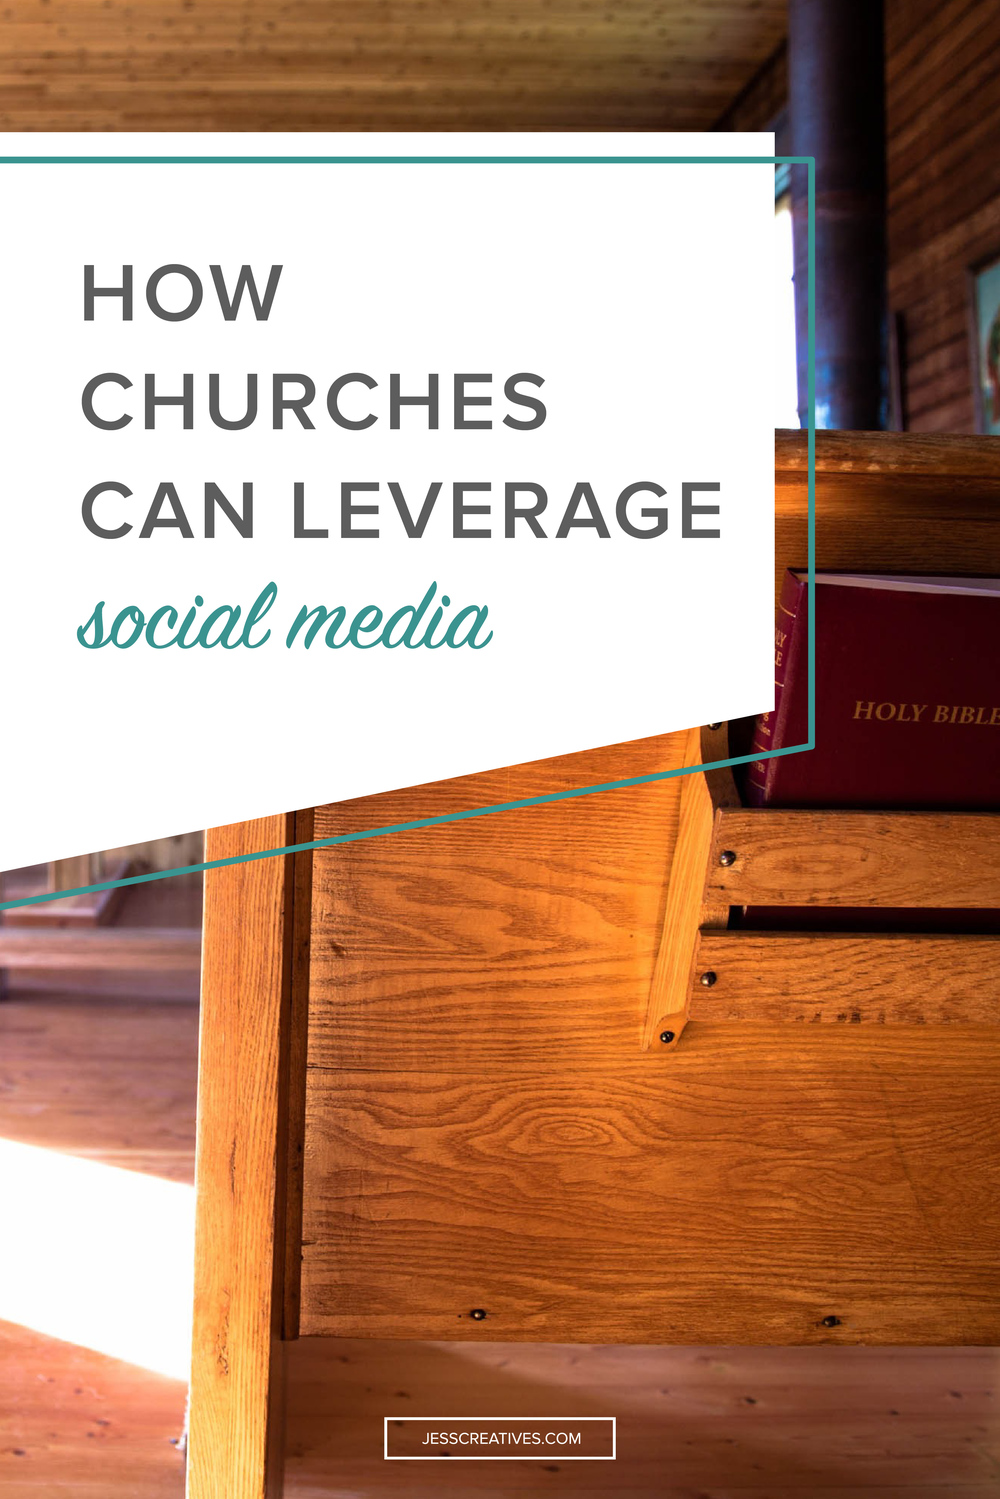 Churches don't have products to sell, they don't have giveaways and sales. How can they use social media? Why should they even bother? Because most people attend church for two reasons: to grow in their faith, and to have community.